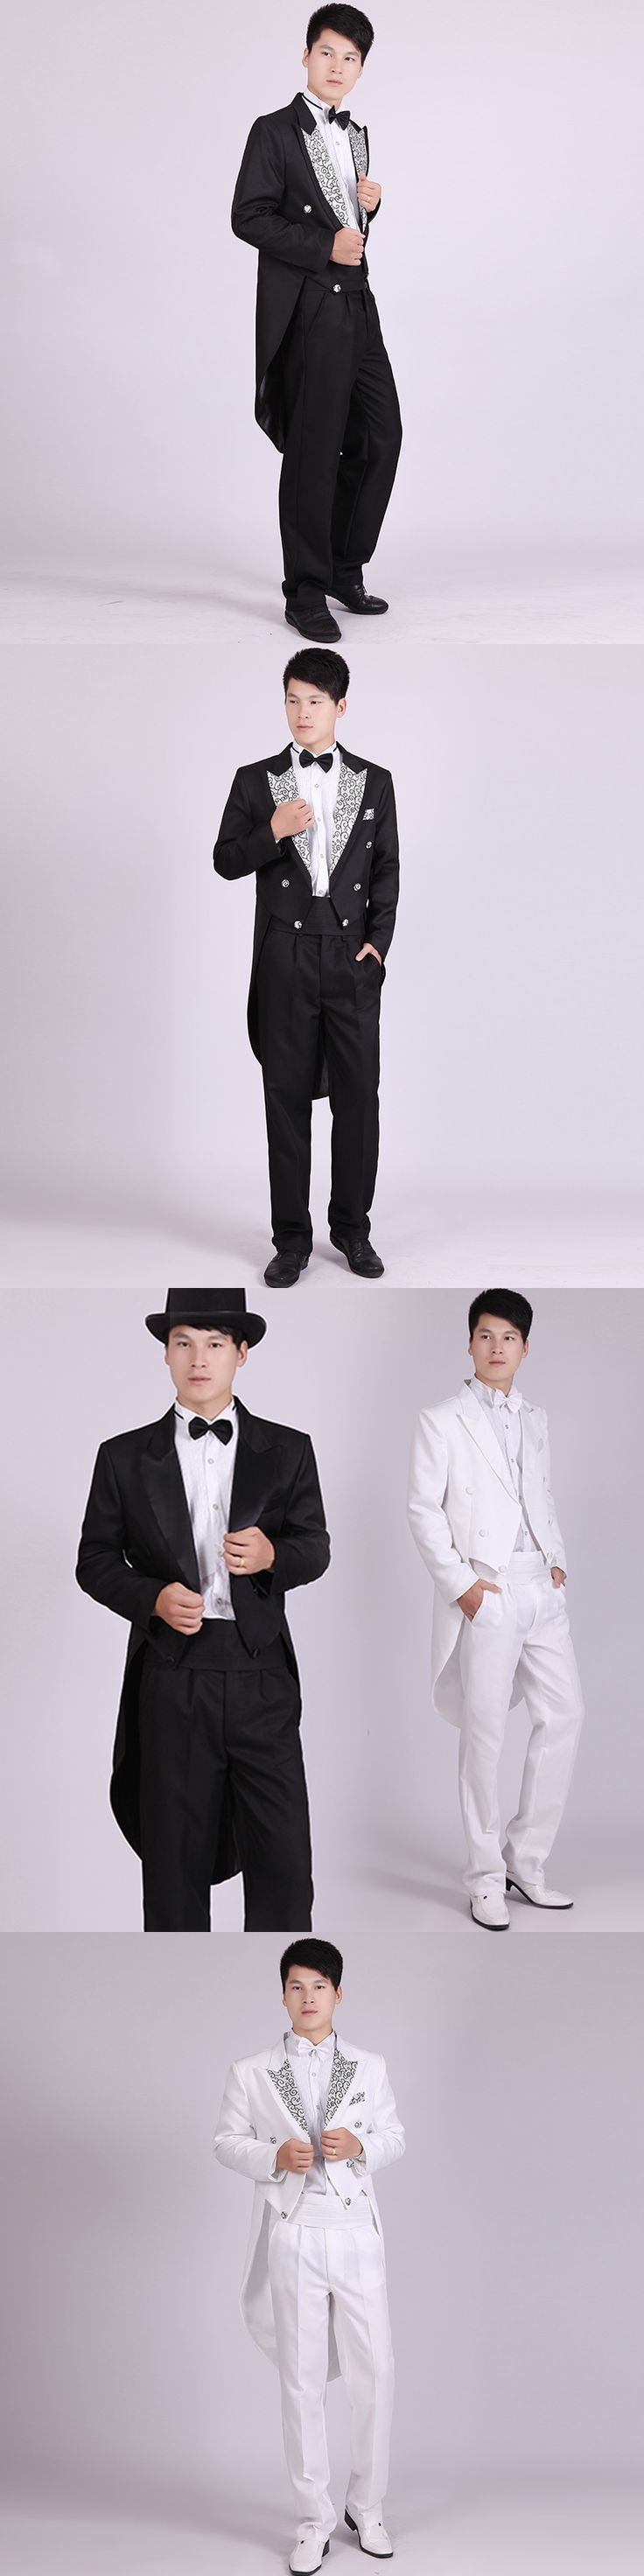 Men's Tuxedo Wedding Groomsmen Gala Dinner Party Magician Moderator Playing a piano suit Performance suits